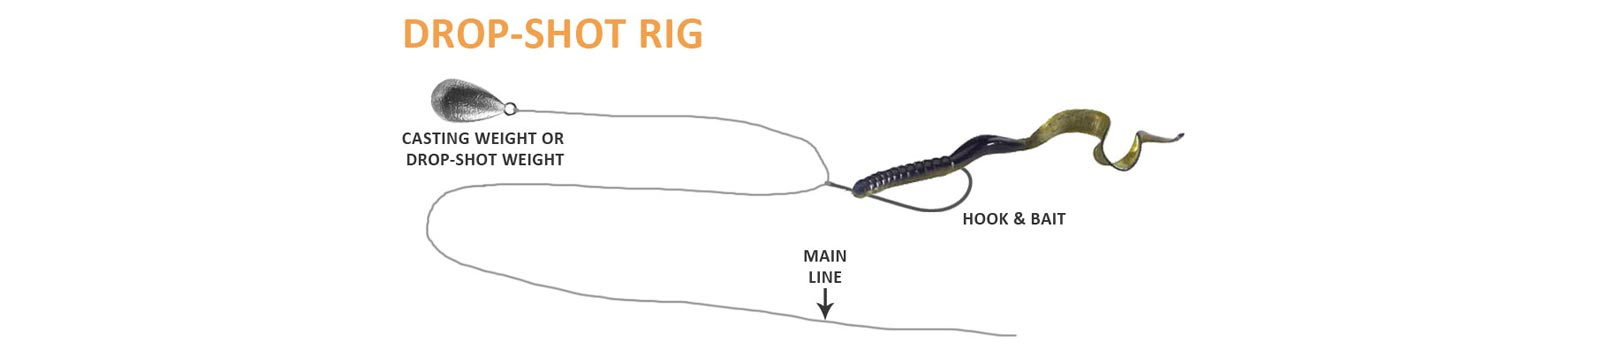 Drop-Shot Rig Diagram